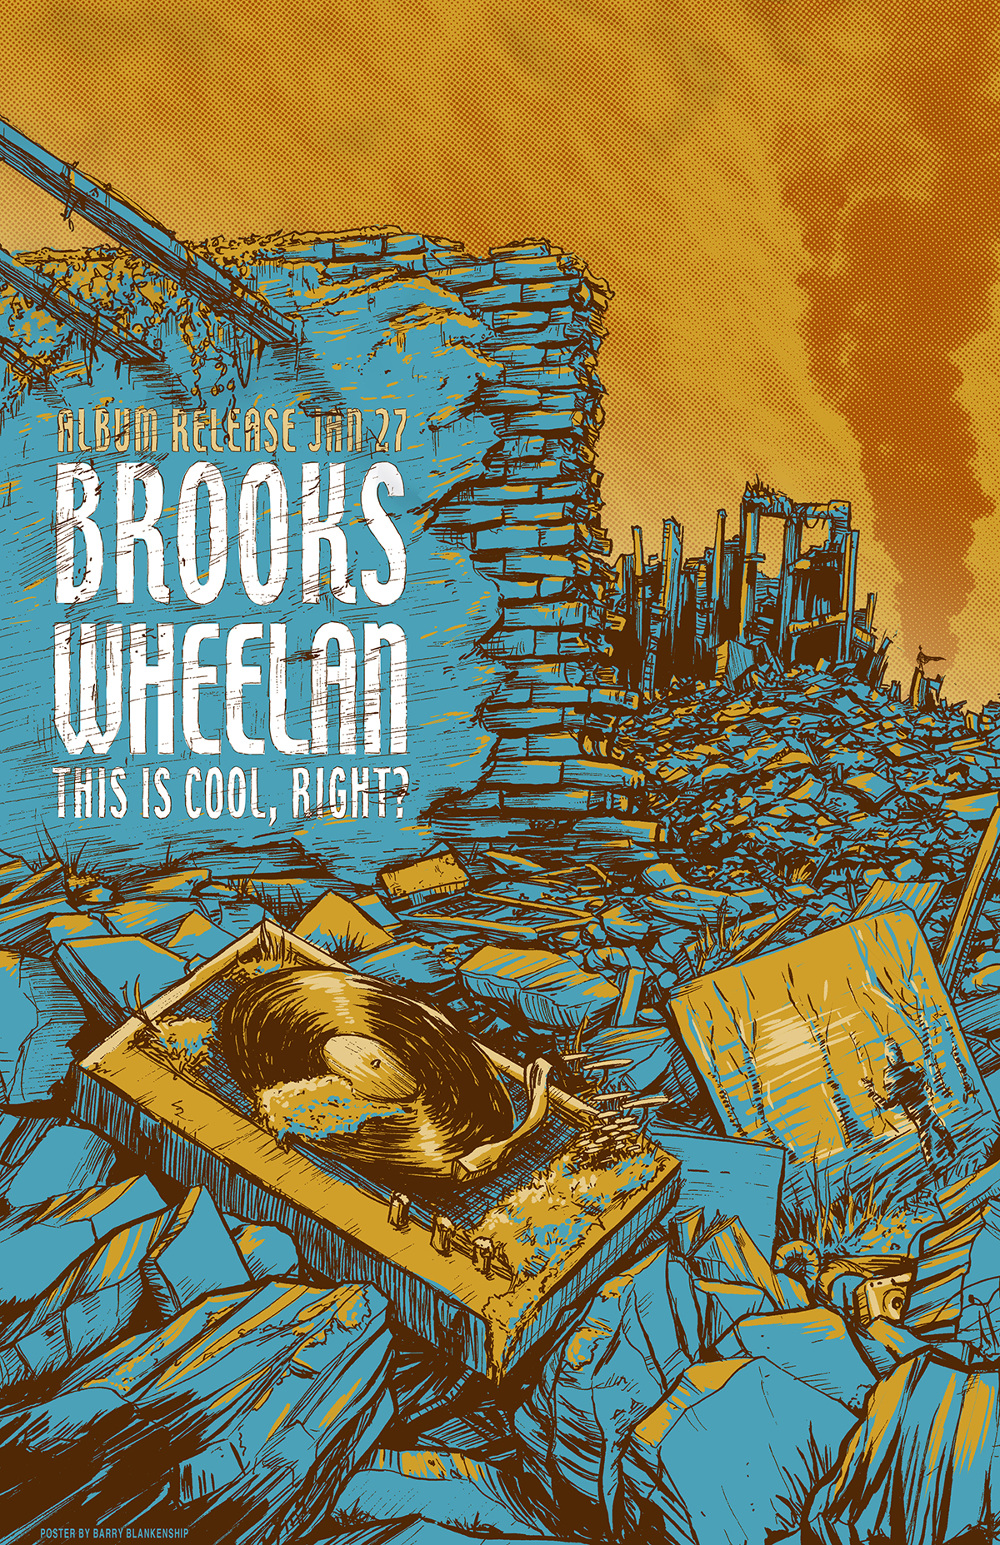 brooks_wheelan_album_release_1000.jpg